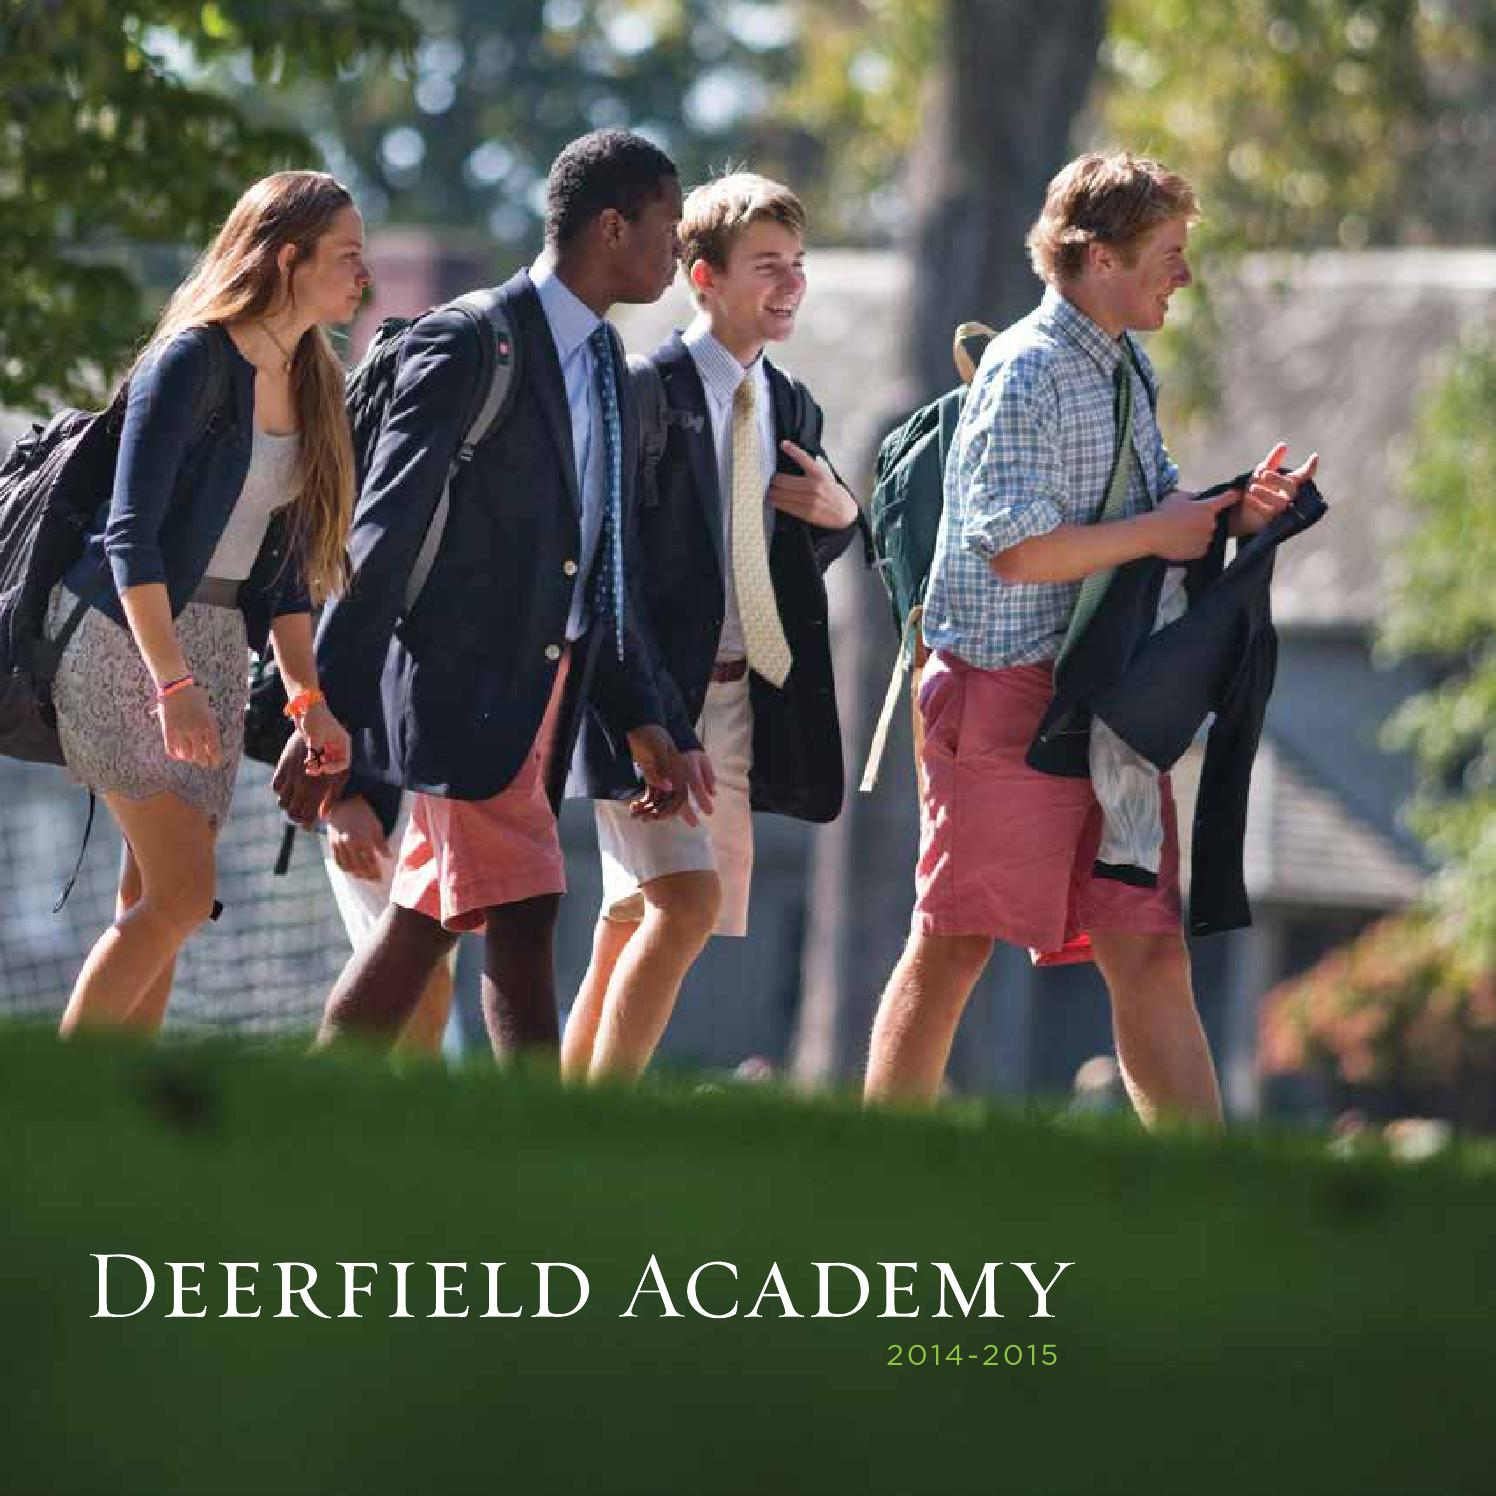 deerfield academy admission essay Deerfield academy admission essay, a2 product design coursework help, fw fw fw creative writing assignment at kontraband.